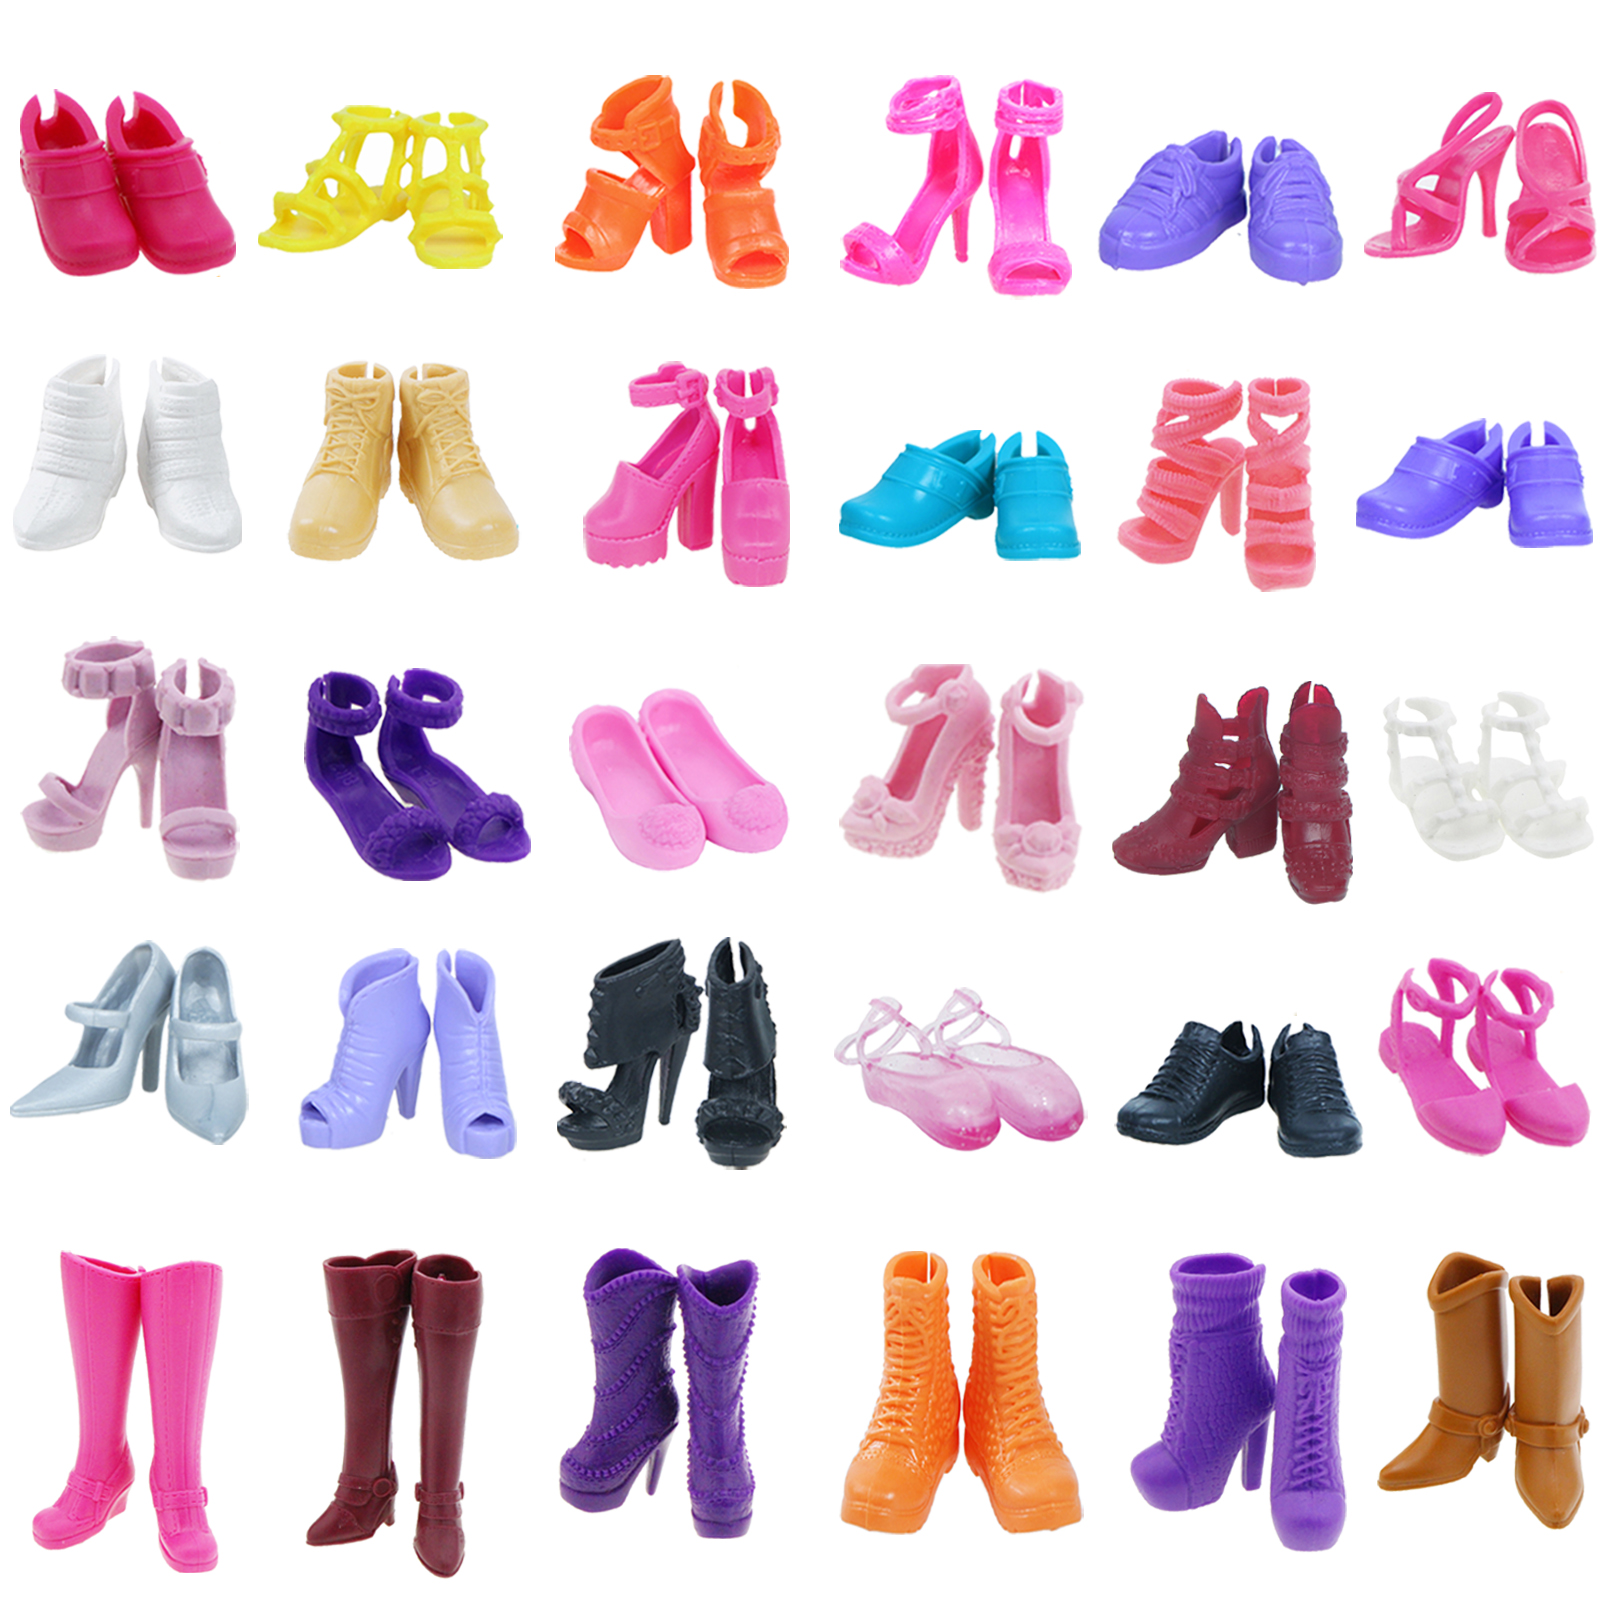 10 Pairs of Doll Shoes Pink Flower Heels Shoe For 11.5 inches Dolls